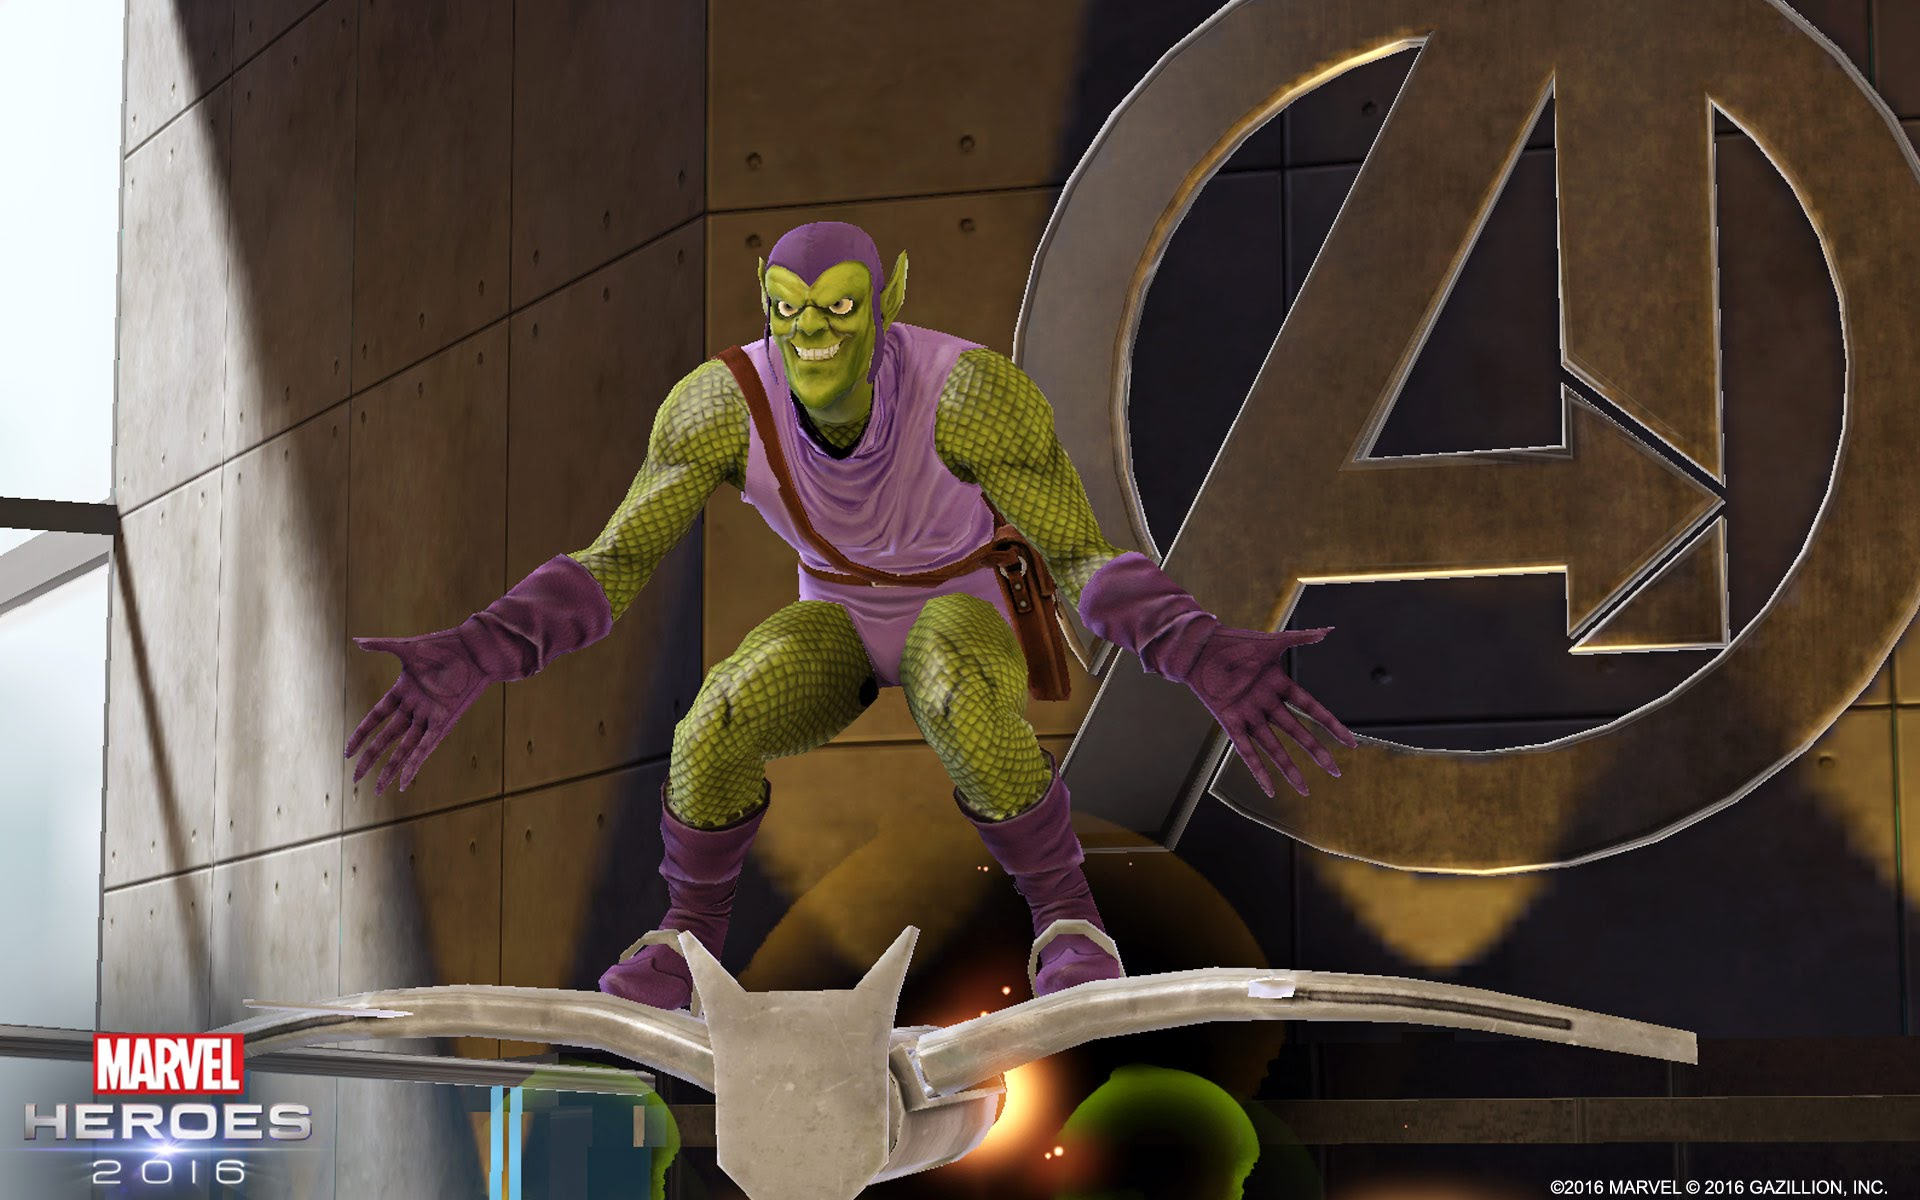 Green Goblin Wreaks Havoc in Marvel Heroes 2016!